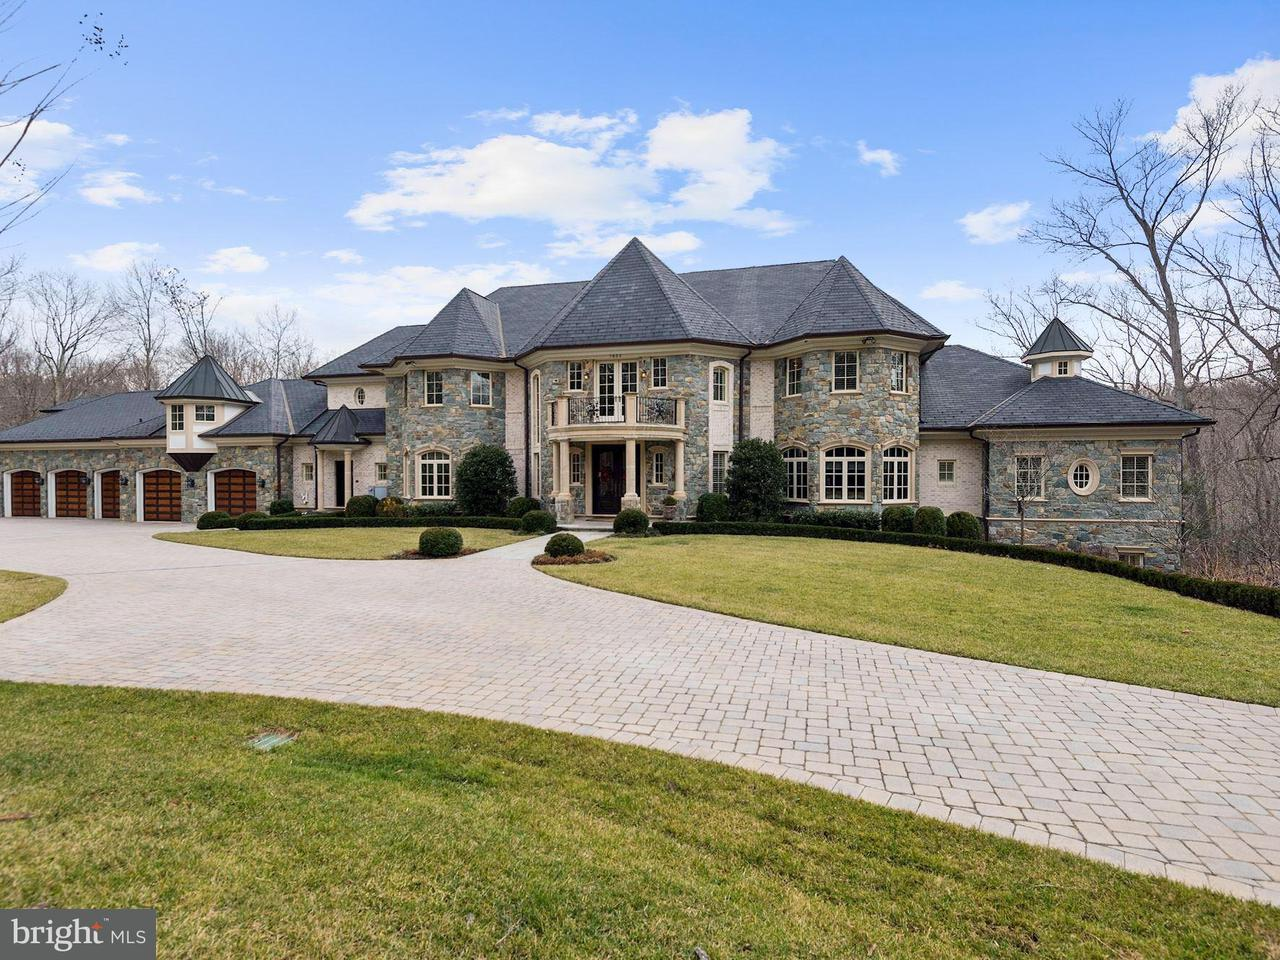 Single Family Home for Sale at 7853 Langley Ridge Road 7853 Langley Ridge Road McLean, Virginia 22102 United States